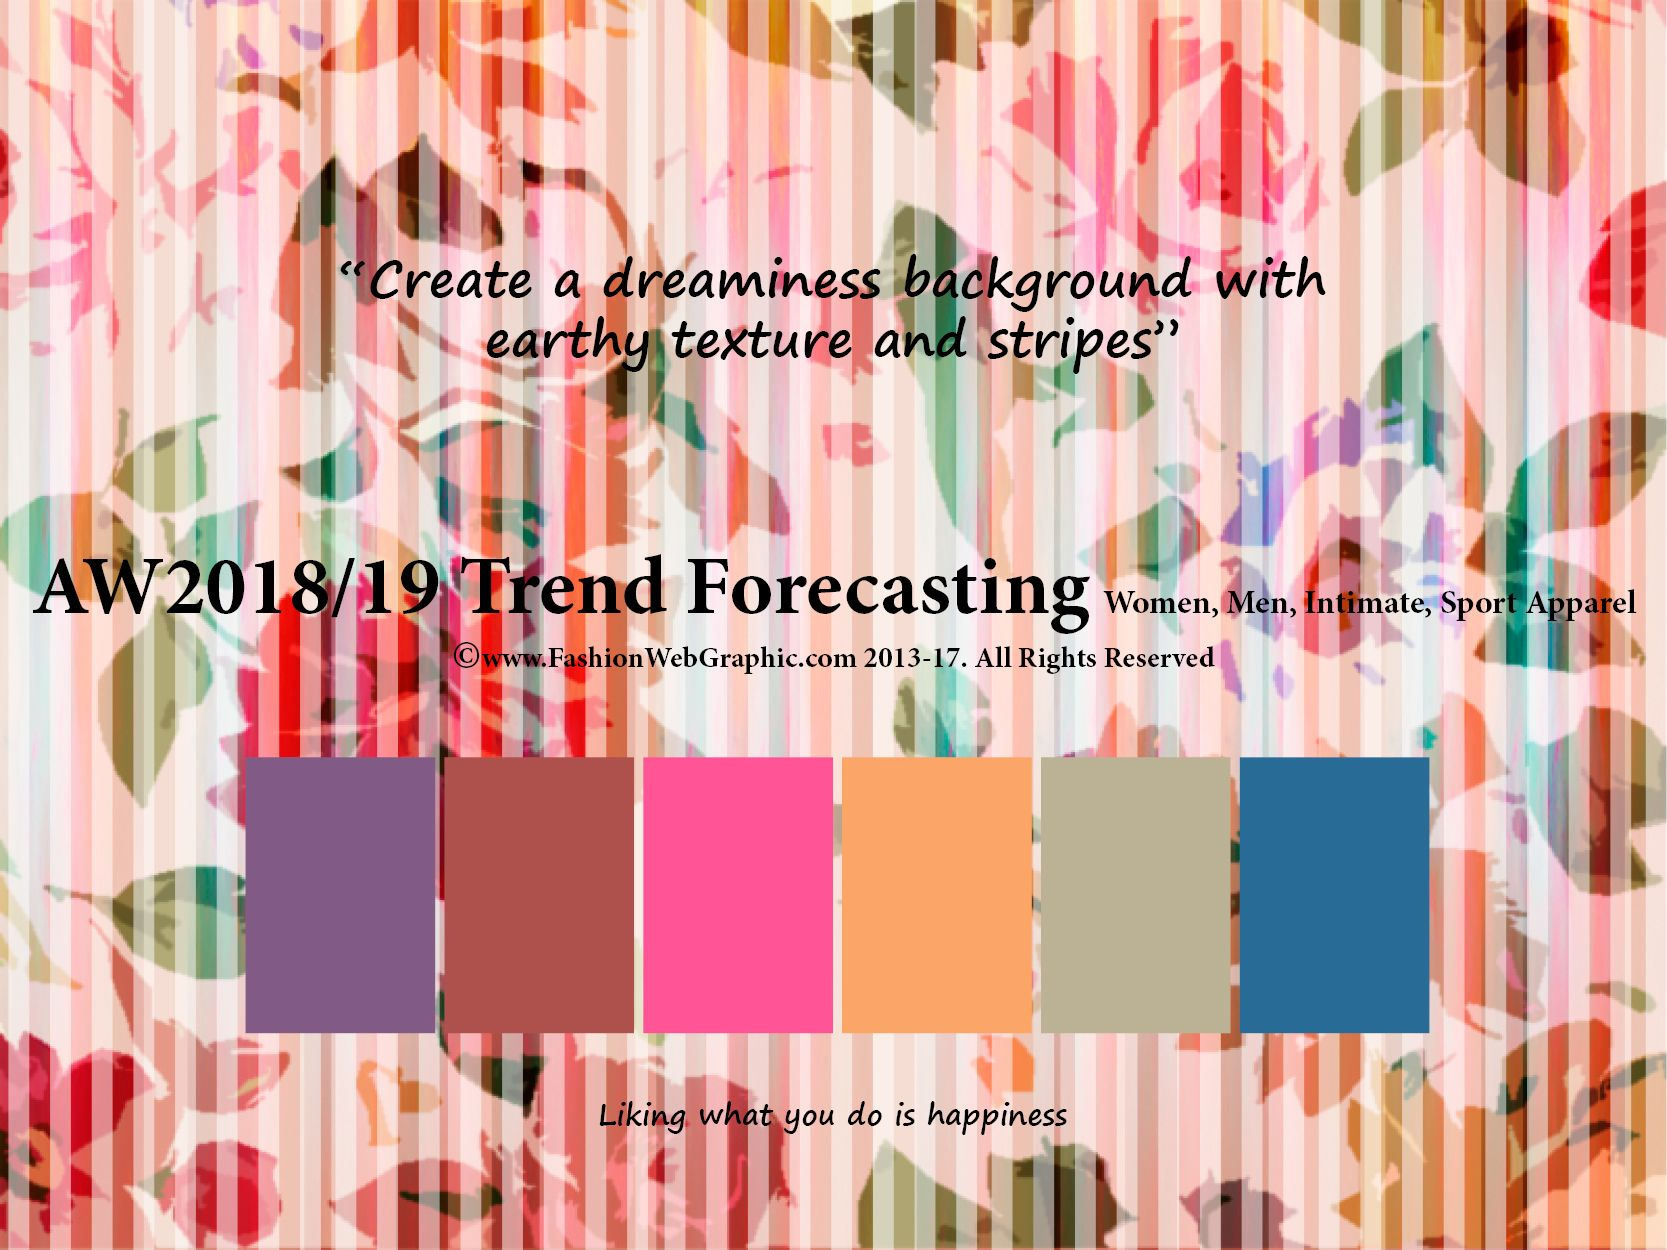 Color Trends Fall 2018 Autumn Winter 2018 2019 Trend Forecasting Is A Trend Color Guide